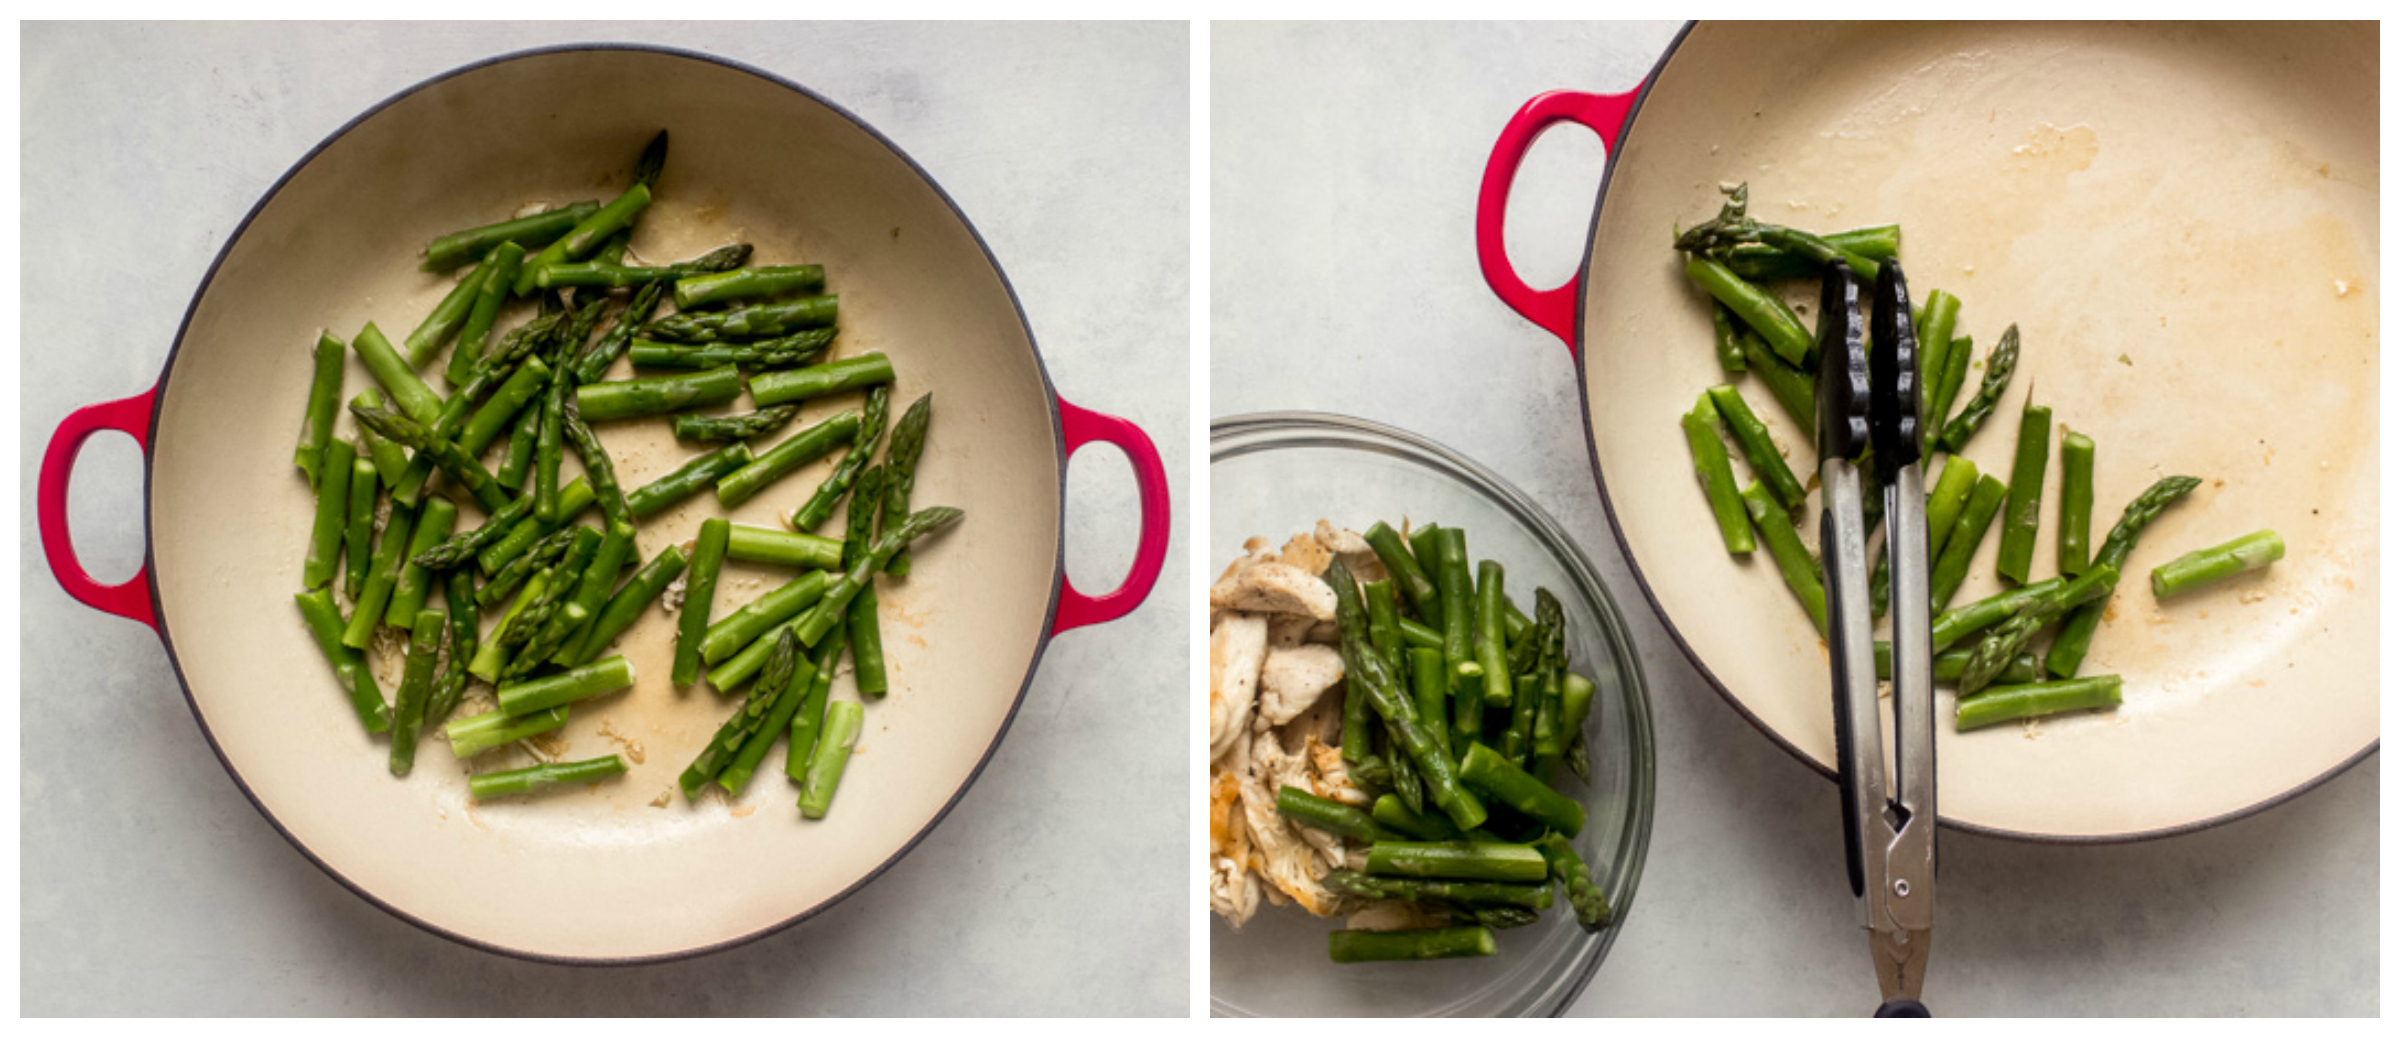 cooked asparagus in saute pan